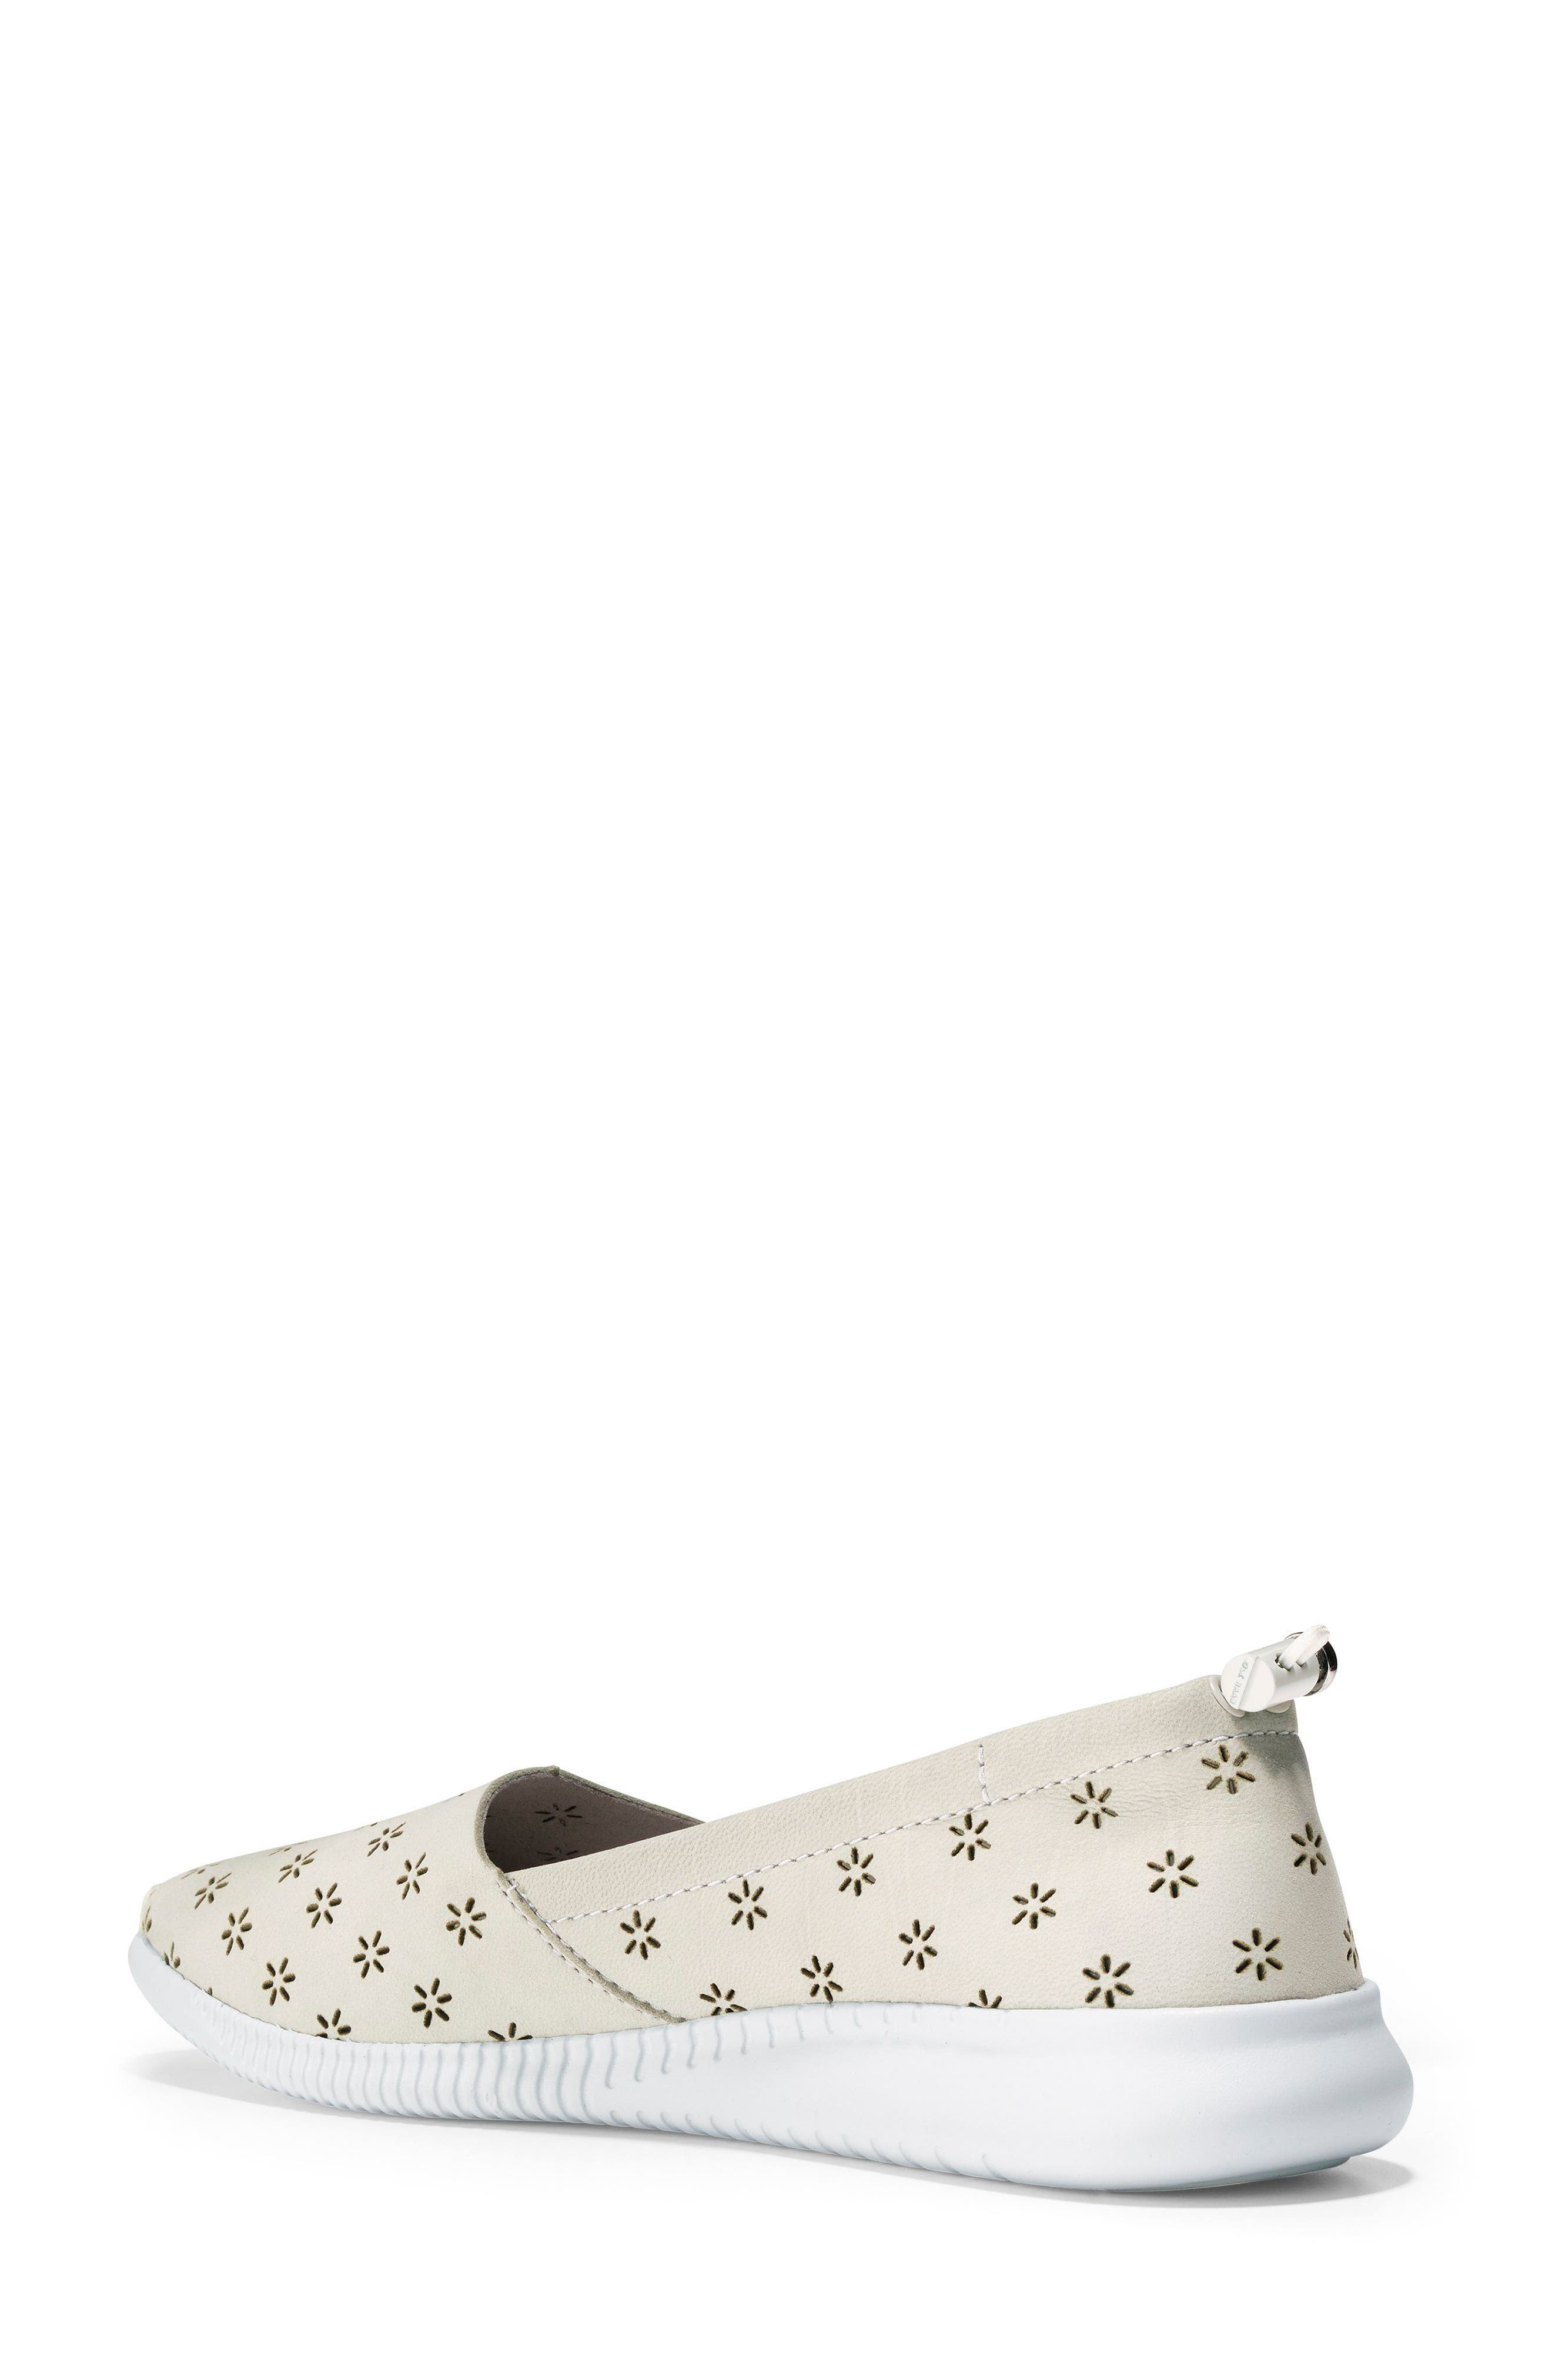 Studiogrand Perforated Slip-on,                             Alternate thumbnail 8, color,